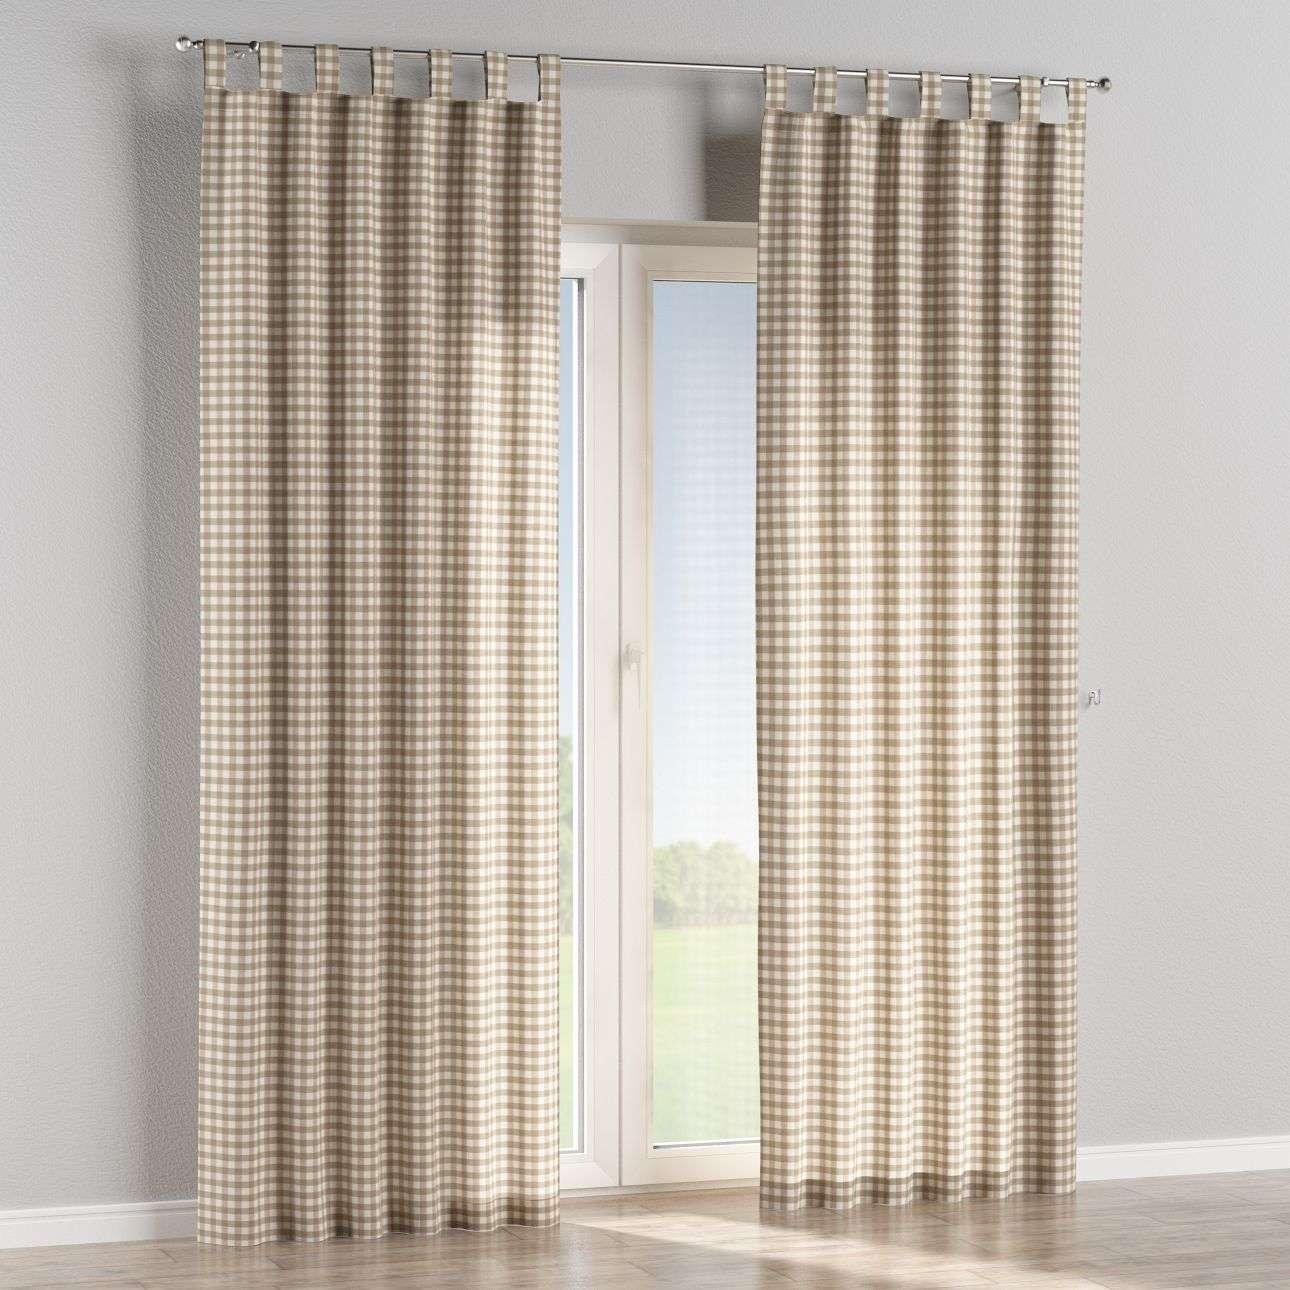 Tab top curtains 130 x 260 cm (51 x 102 inch) in collection Quadro, fabric: 136-06